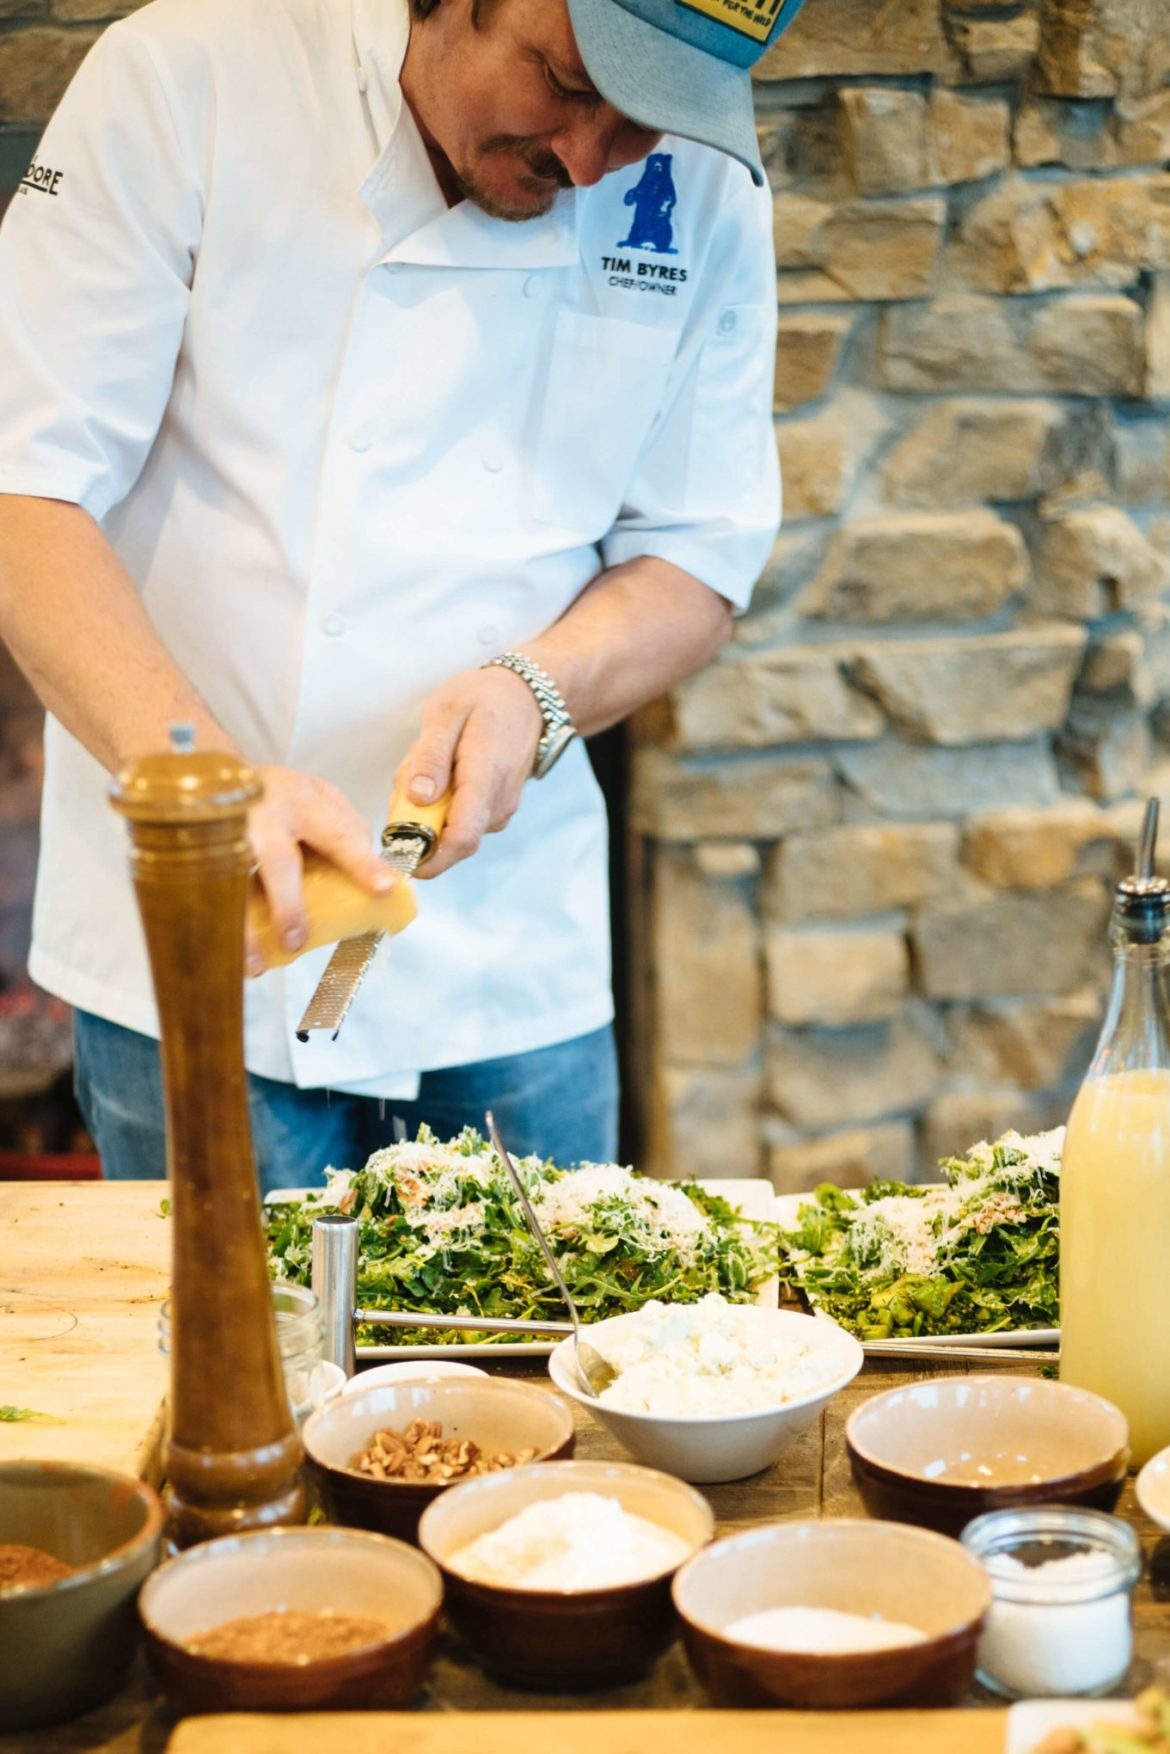 Make Tim Byres grilled broccoli rabe and arugula salad from his award winning smoke cookbook. The Taste Edit experiences it at their visit to Paws Up in Montana.